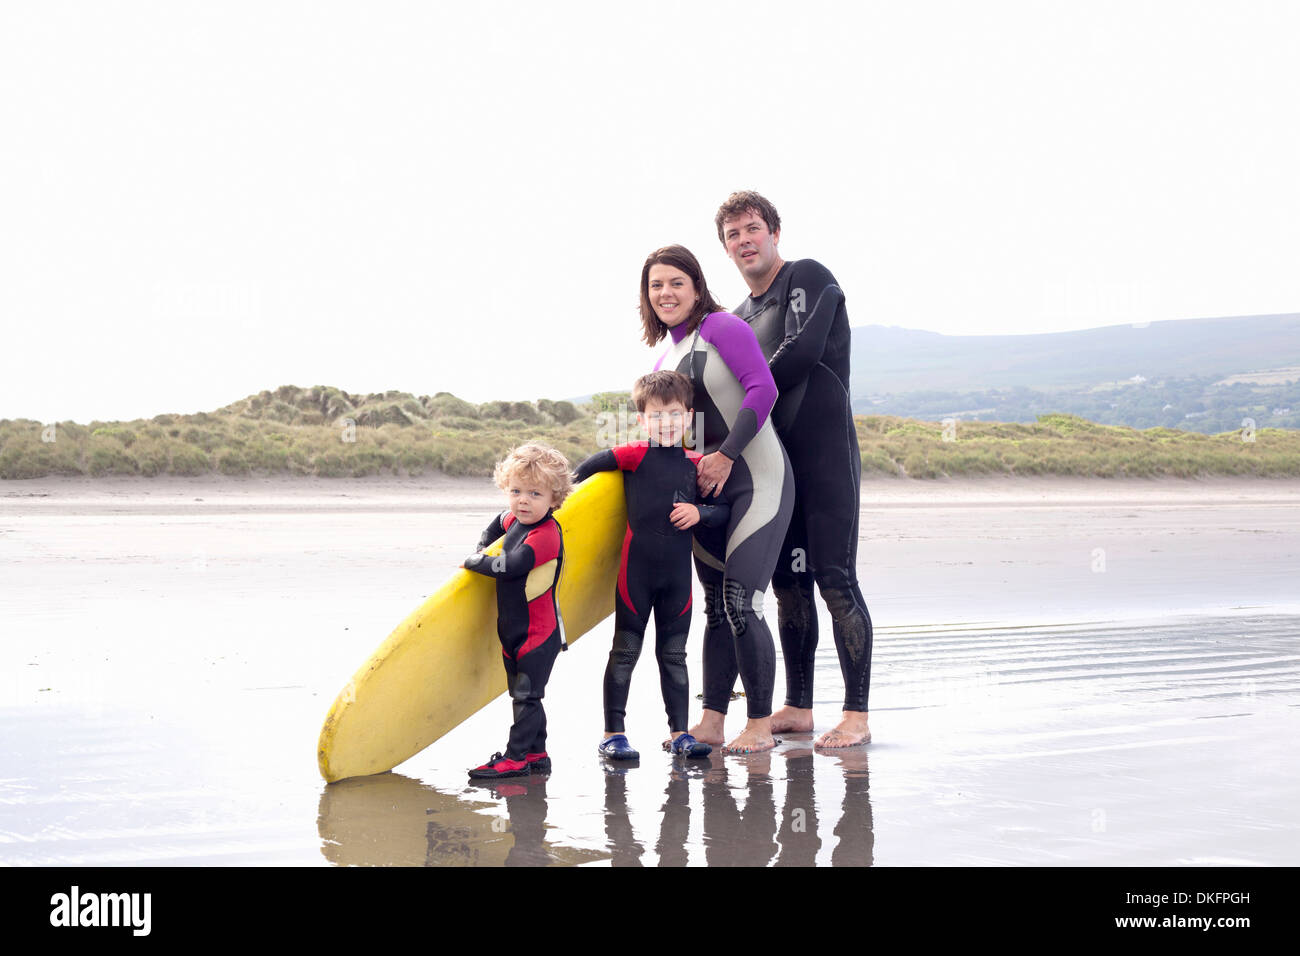 Family with two boys and surfboard on beach - Stock Image